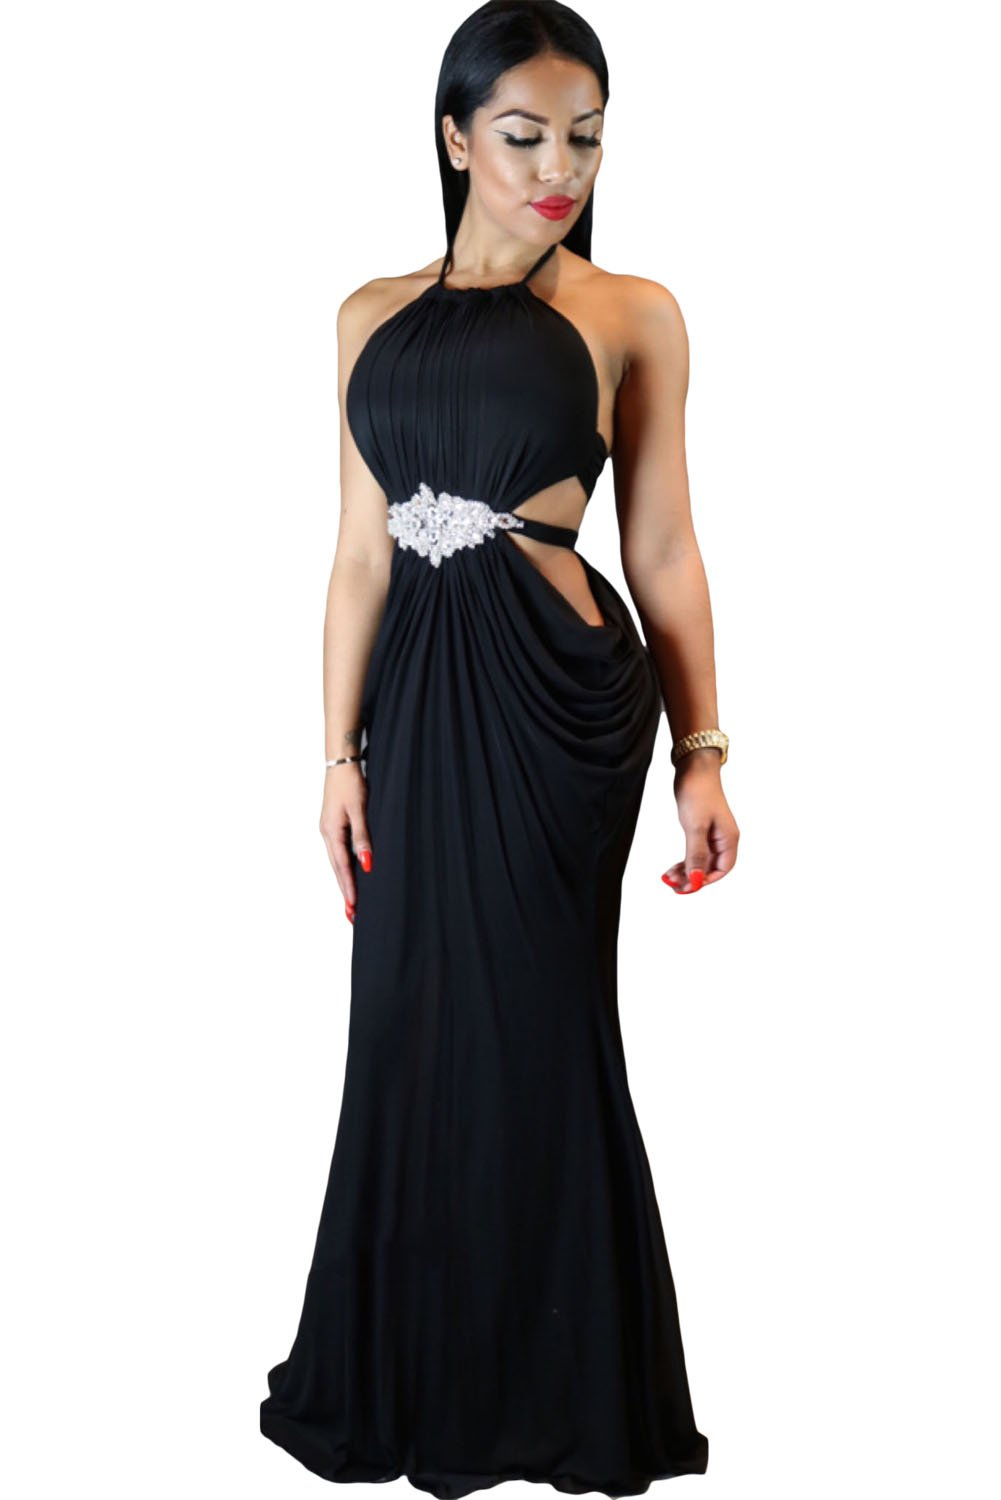 women formal cutout halter black evening gowns  online